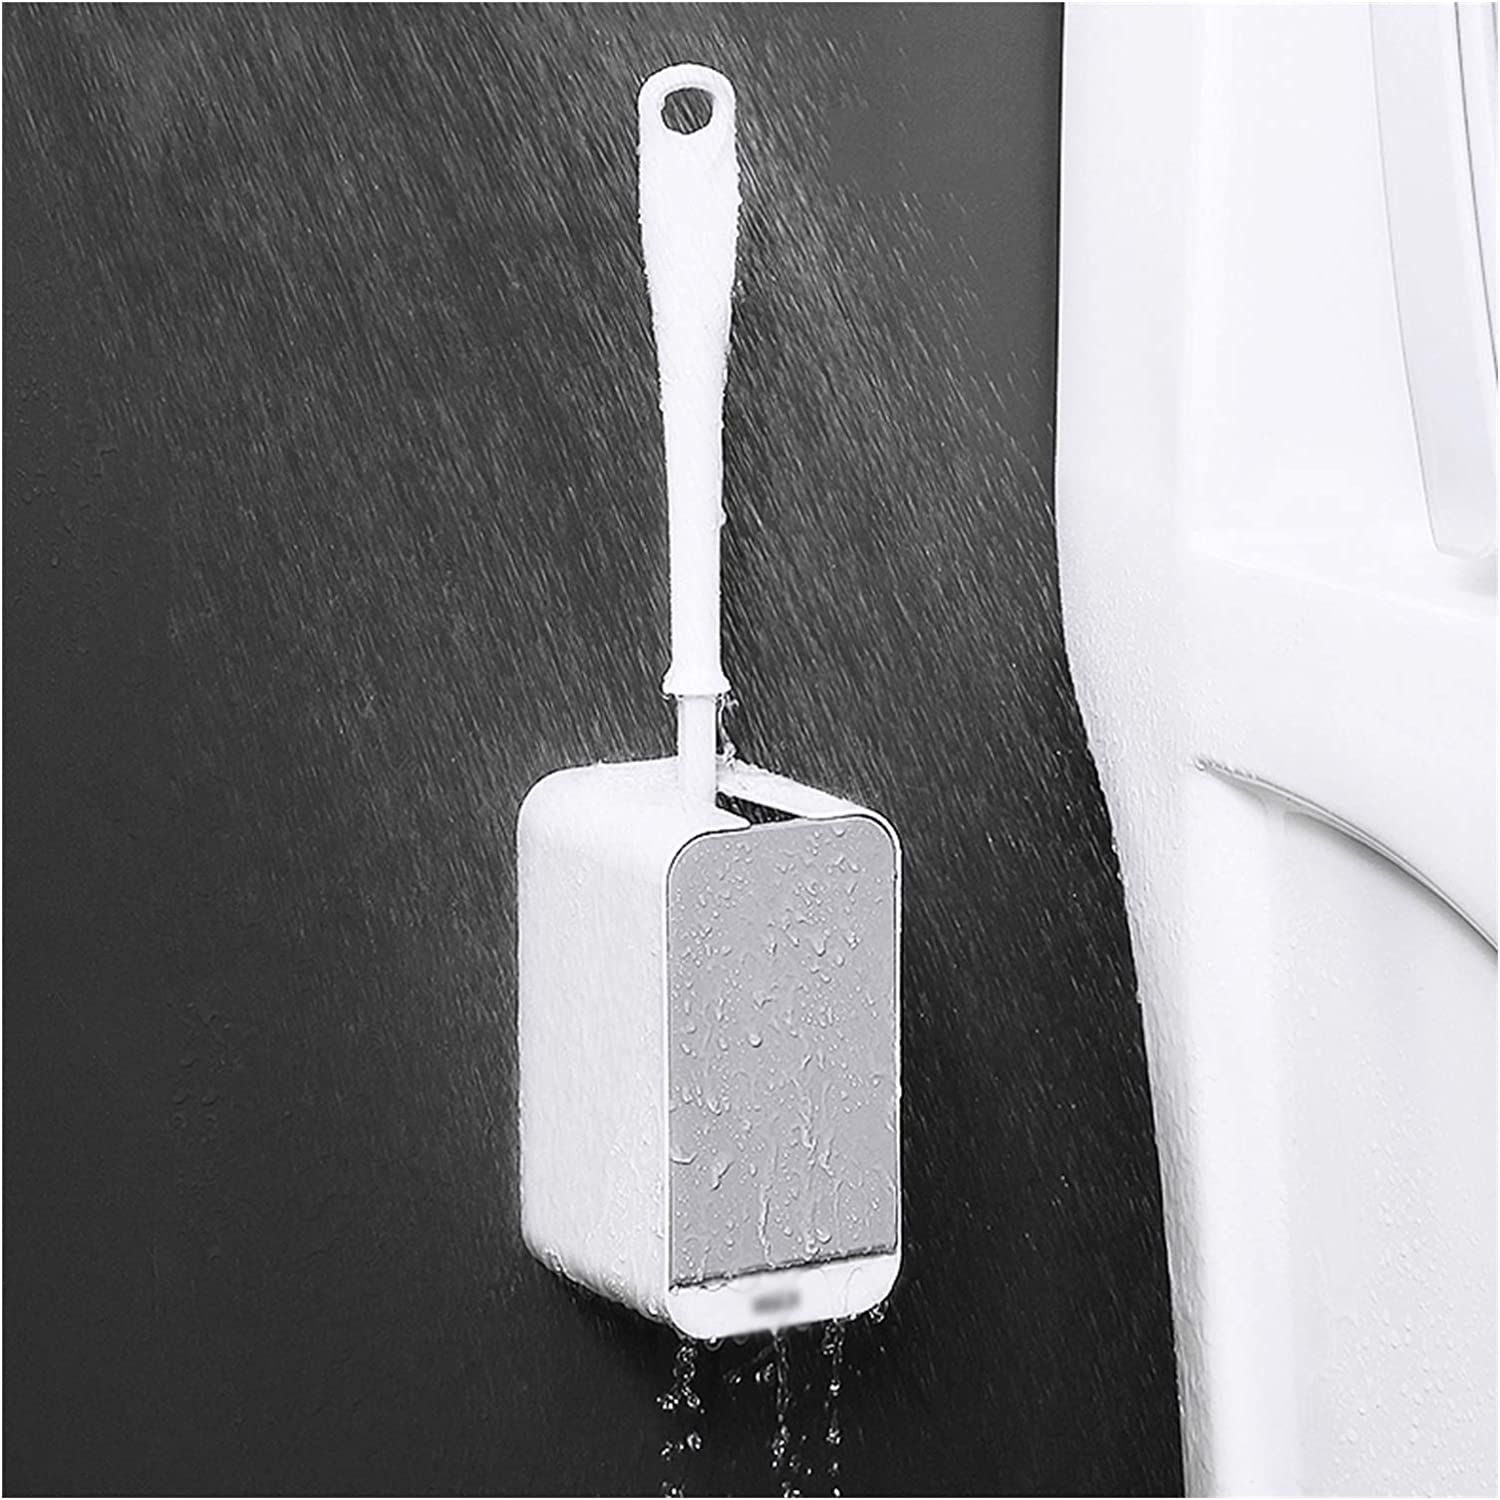 YI0877CHANG Toilet Bowl Brush All-Round Reservation Cleaning To Ranking TOP20